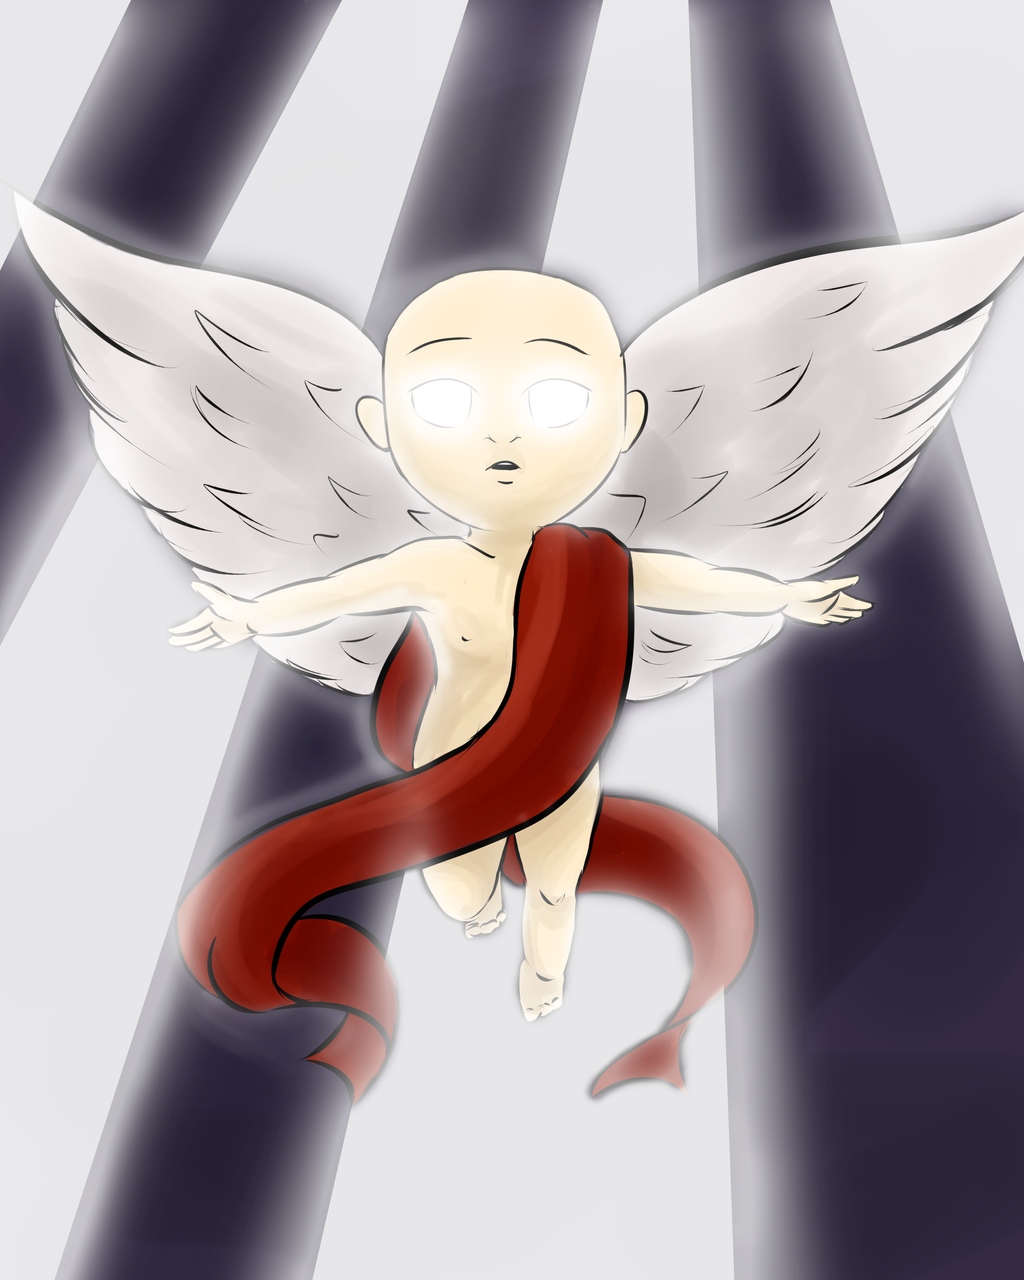 The Binding Of Isaac By Raven554 On DeviantArt